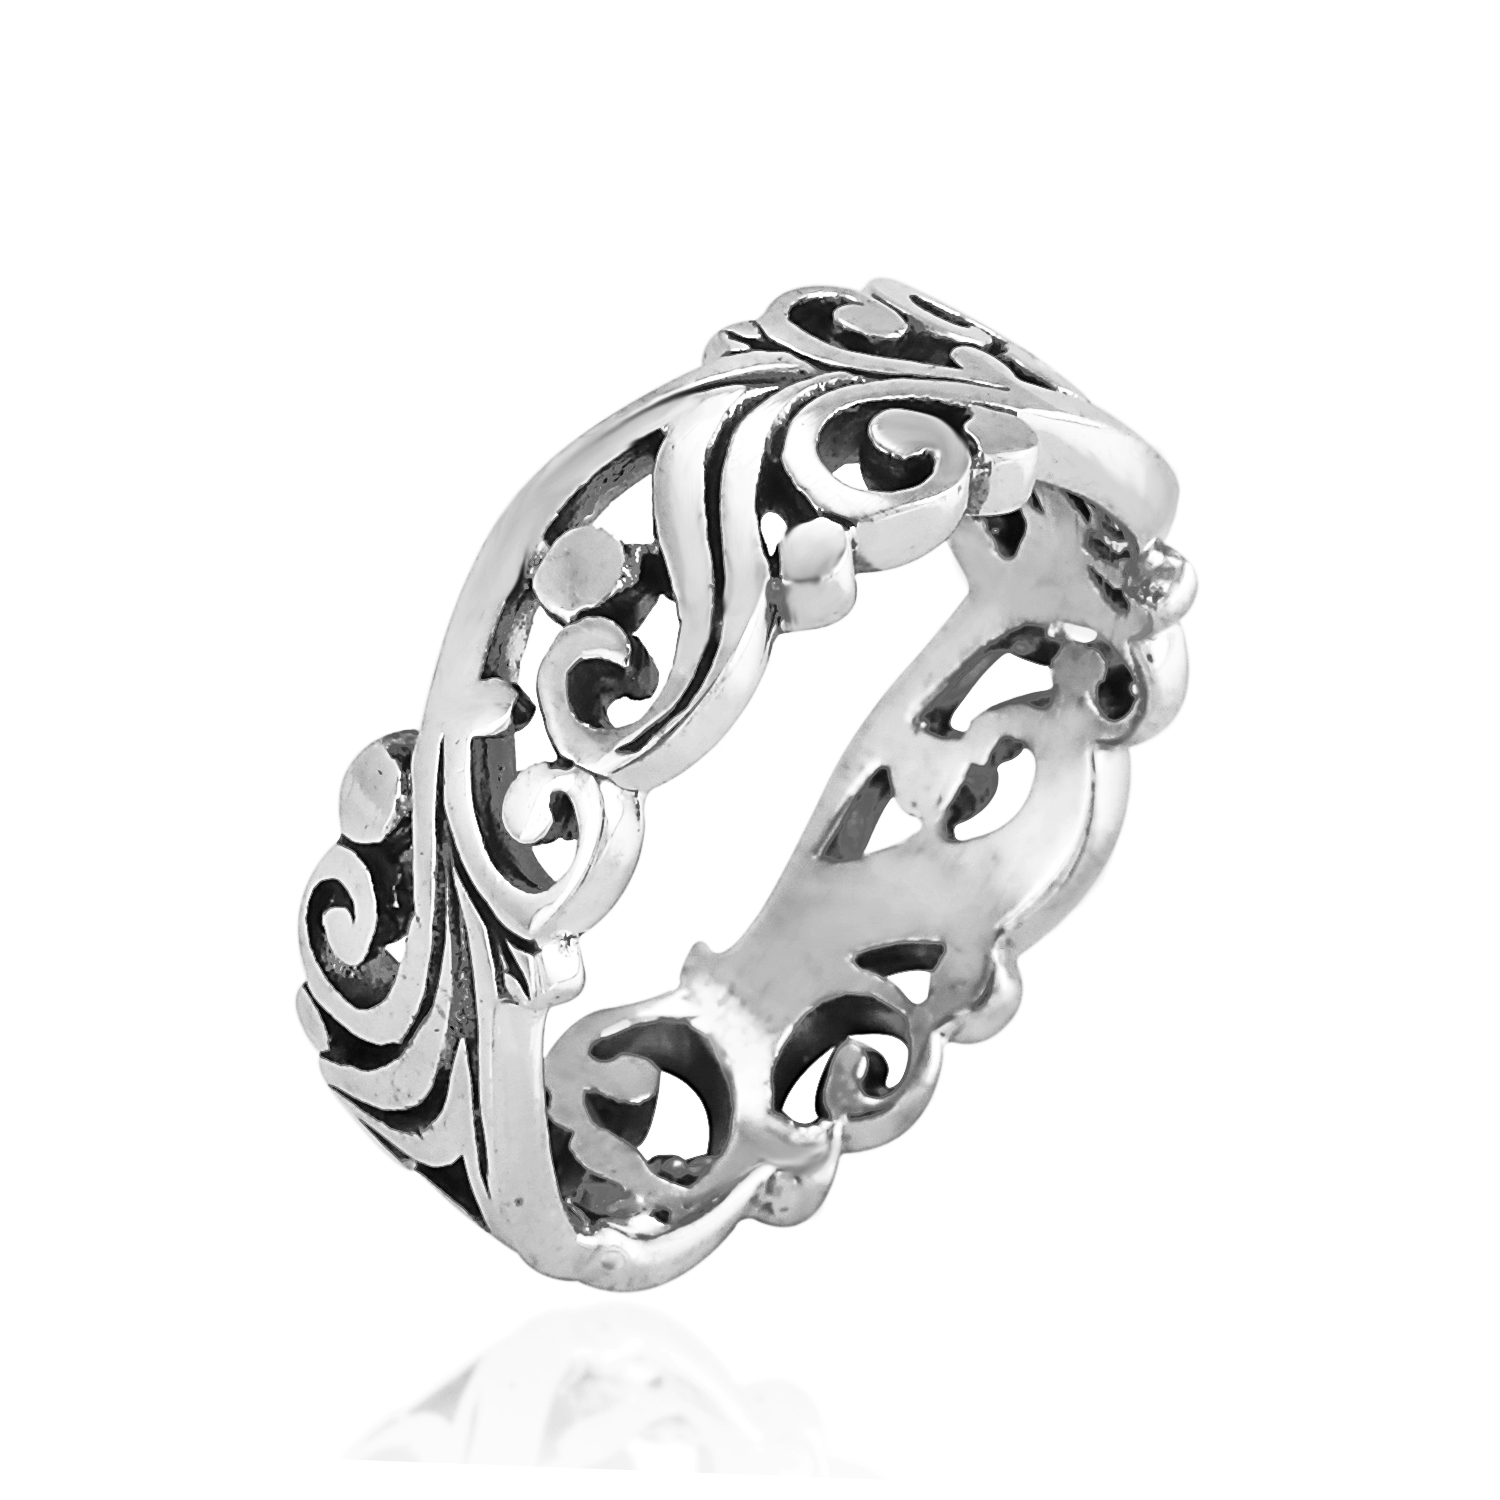 925 Sterling Silver Filigree Swirl Nature Inspired Cut-Out Band Ring - Nickel Free Size 9